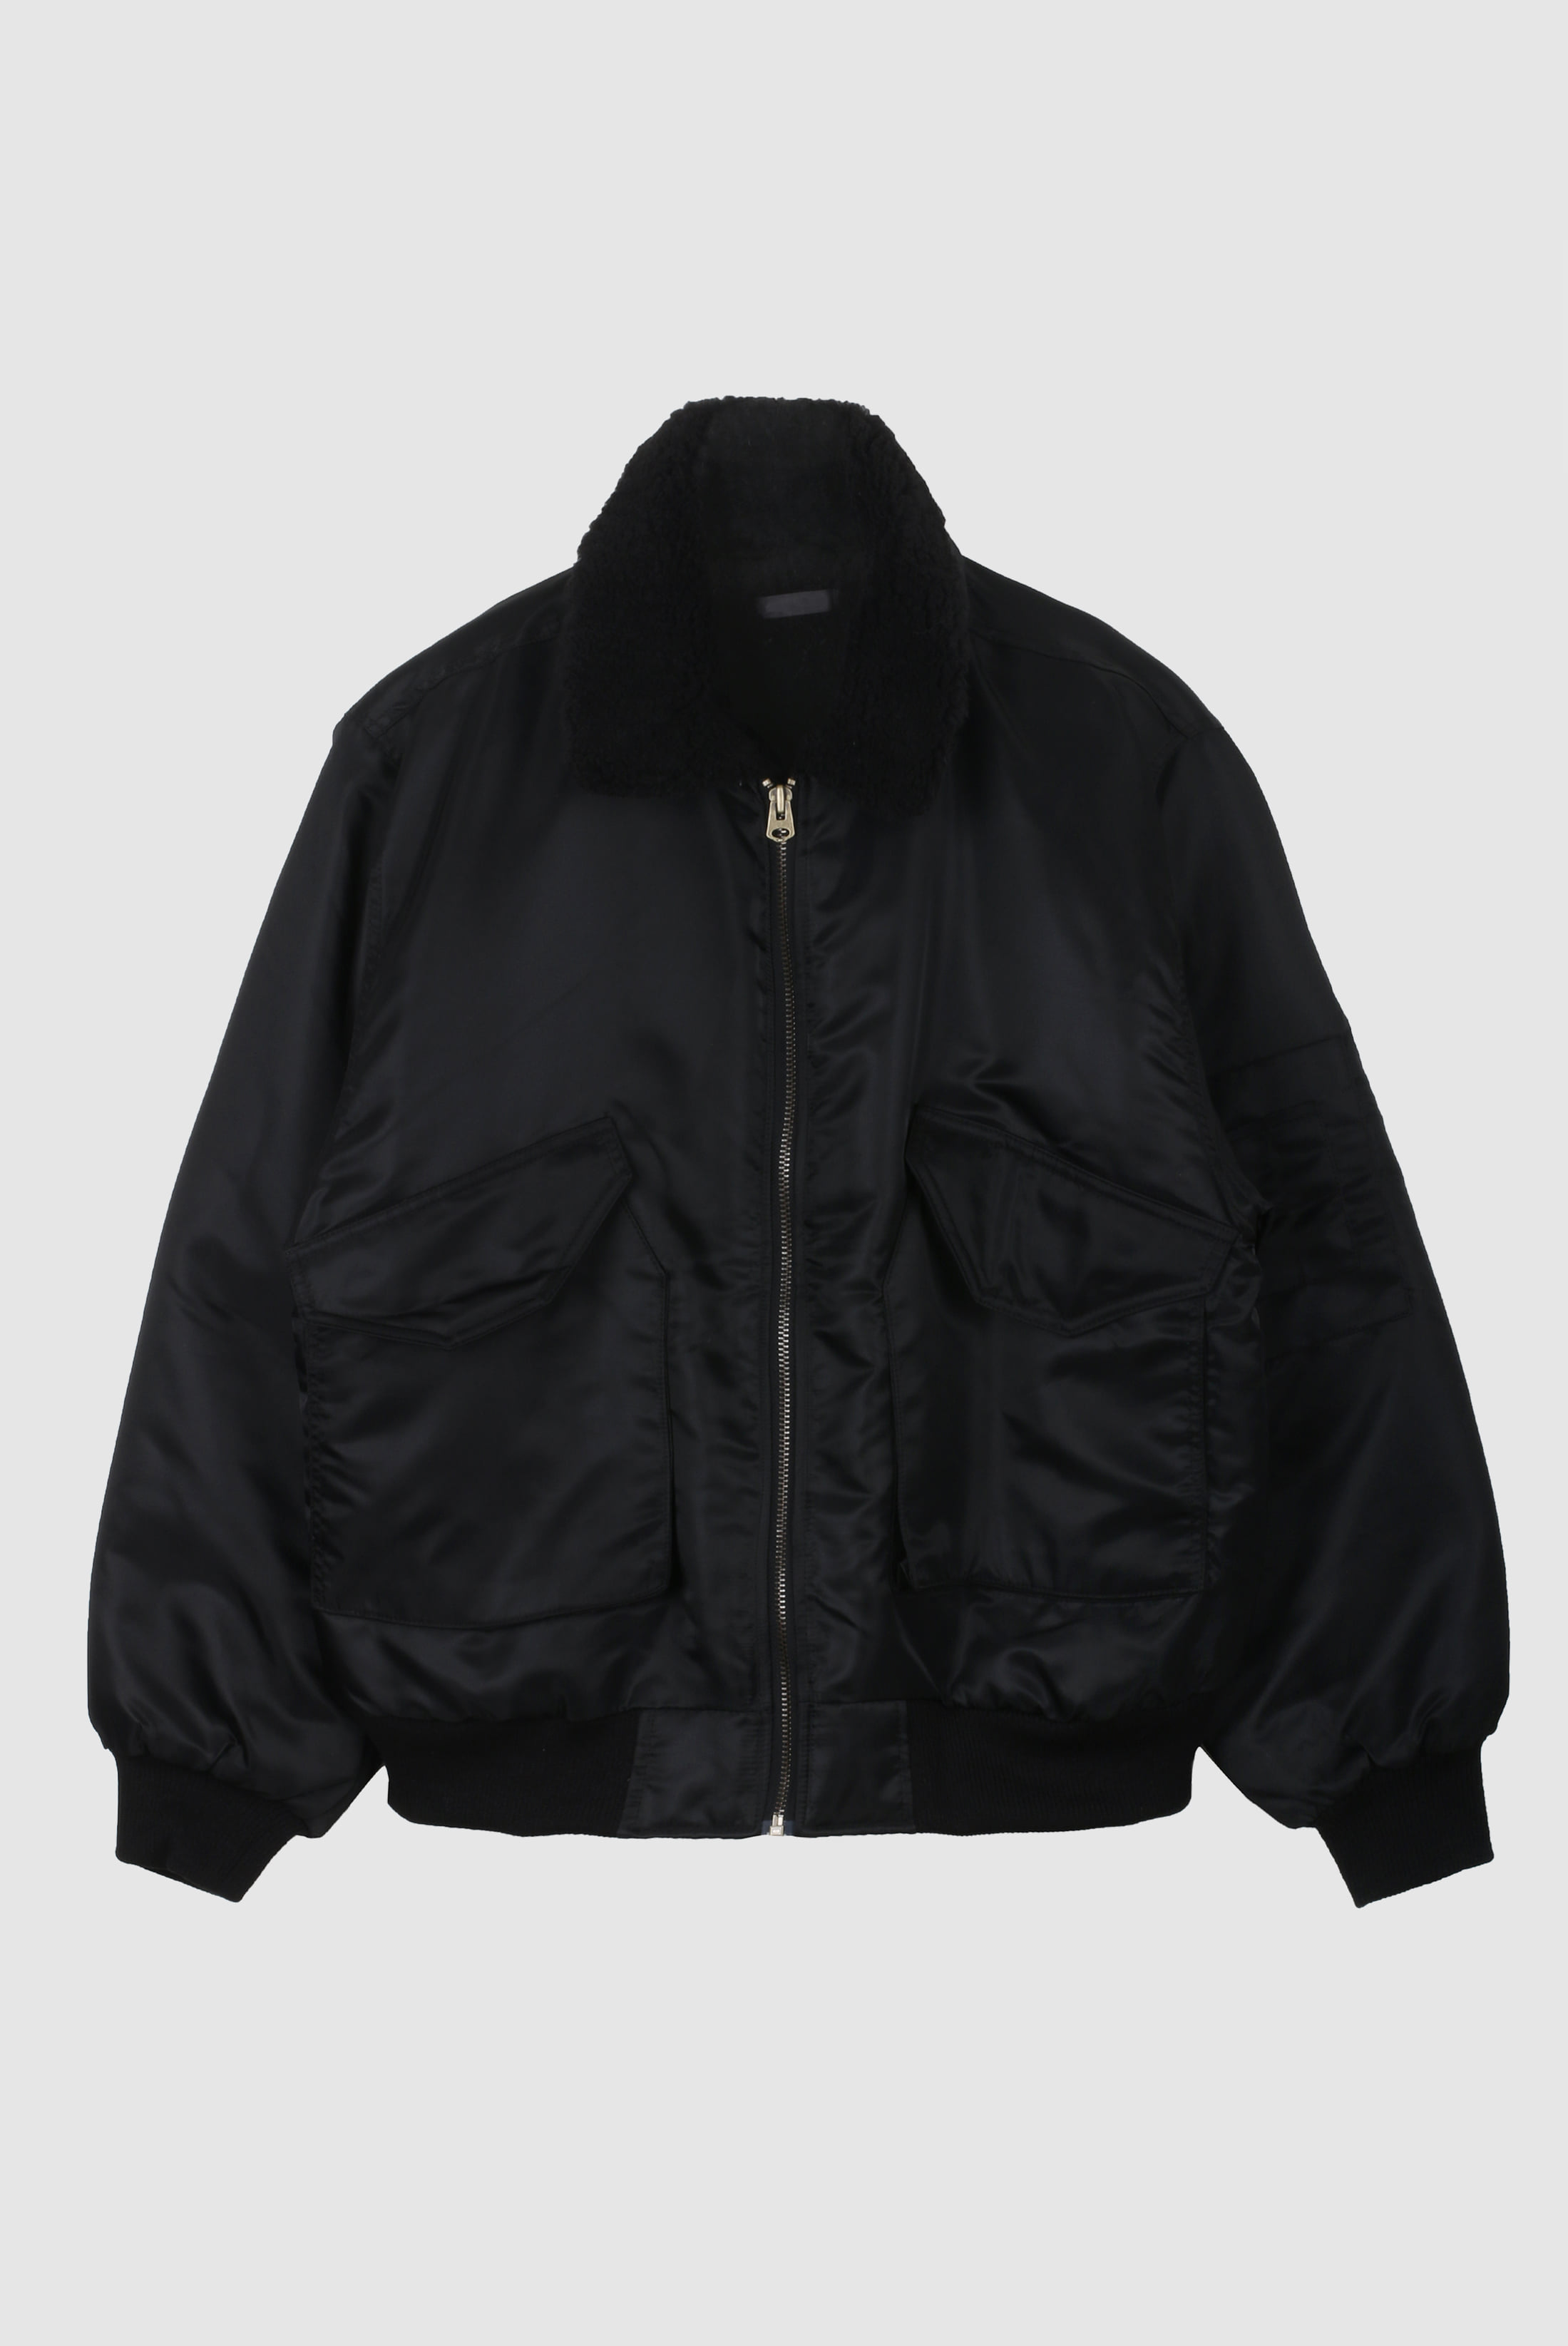 Heavy Dumbling Aviation_Jacket